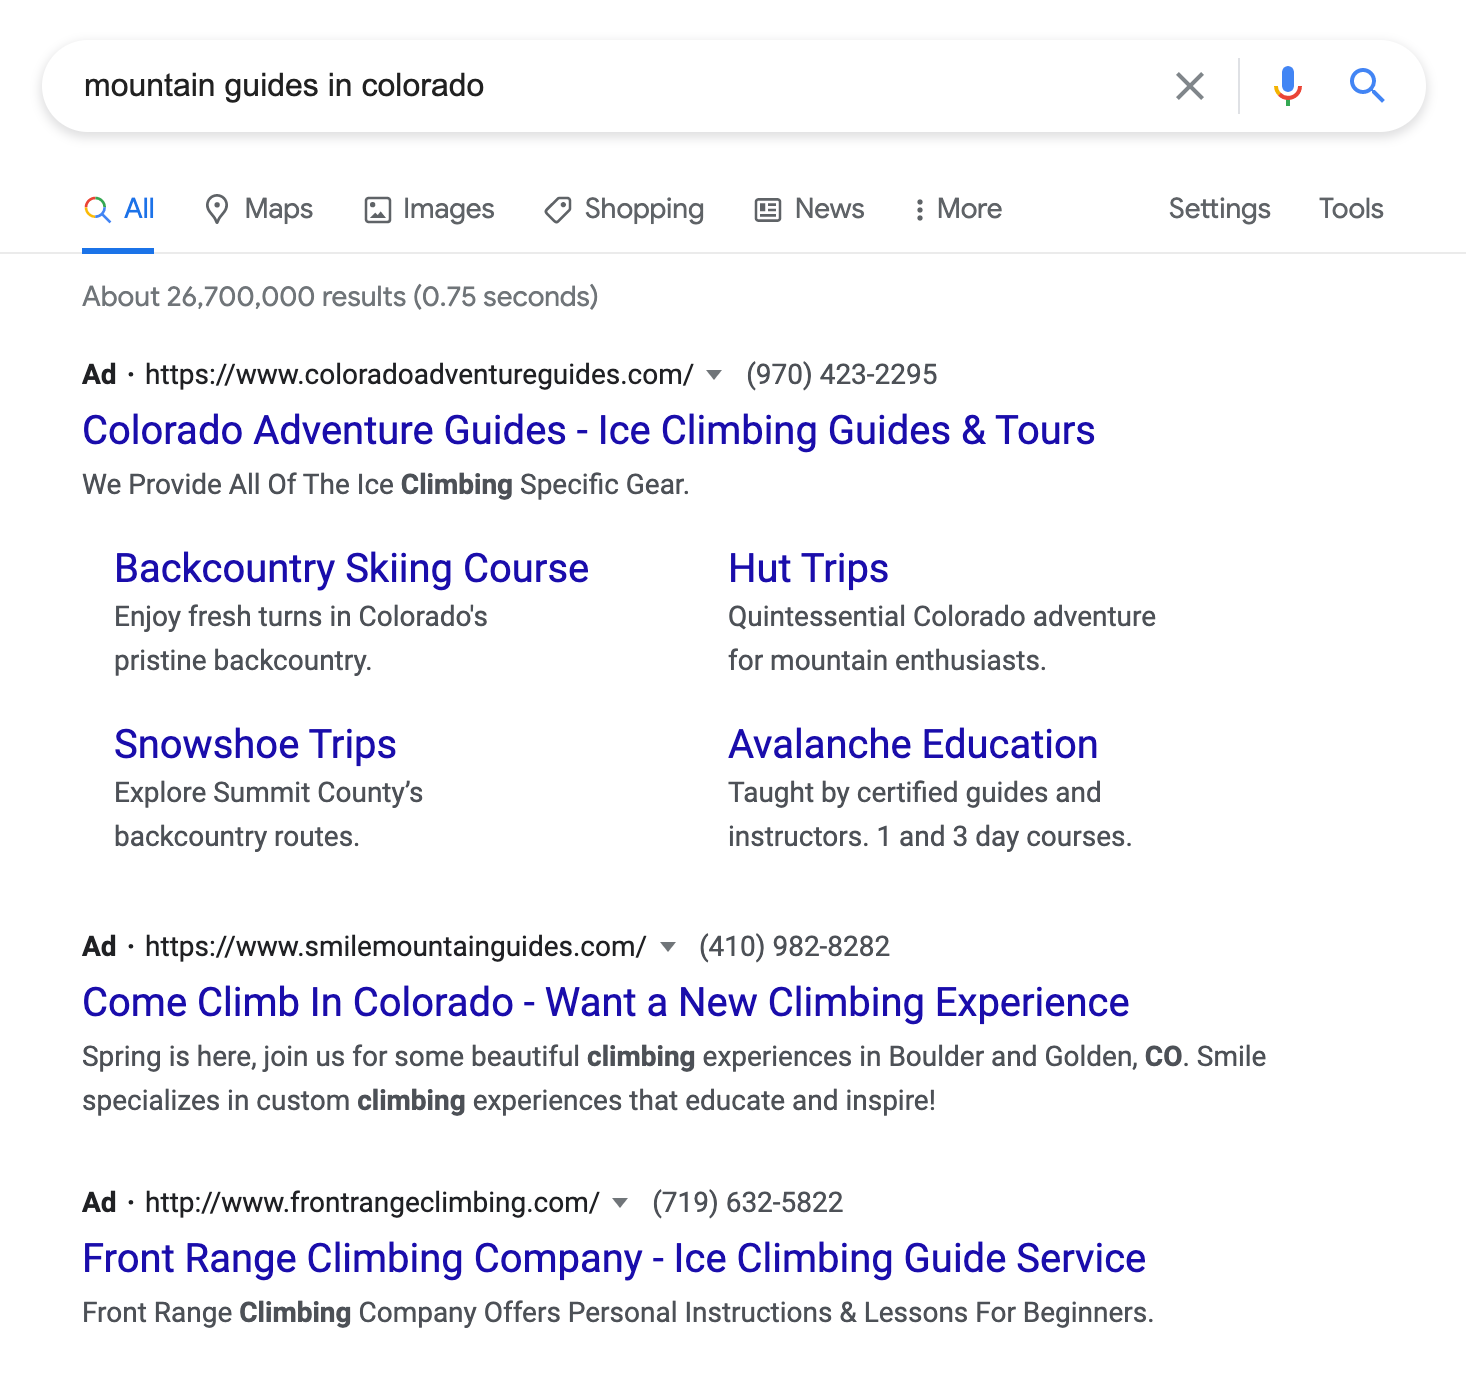 google ad results